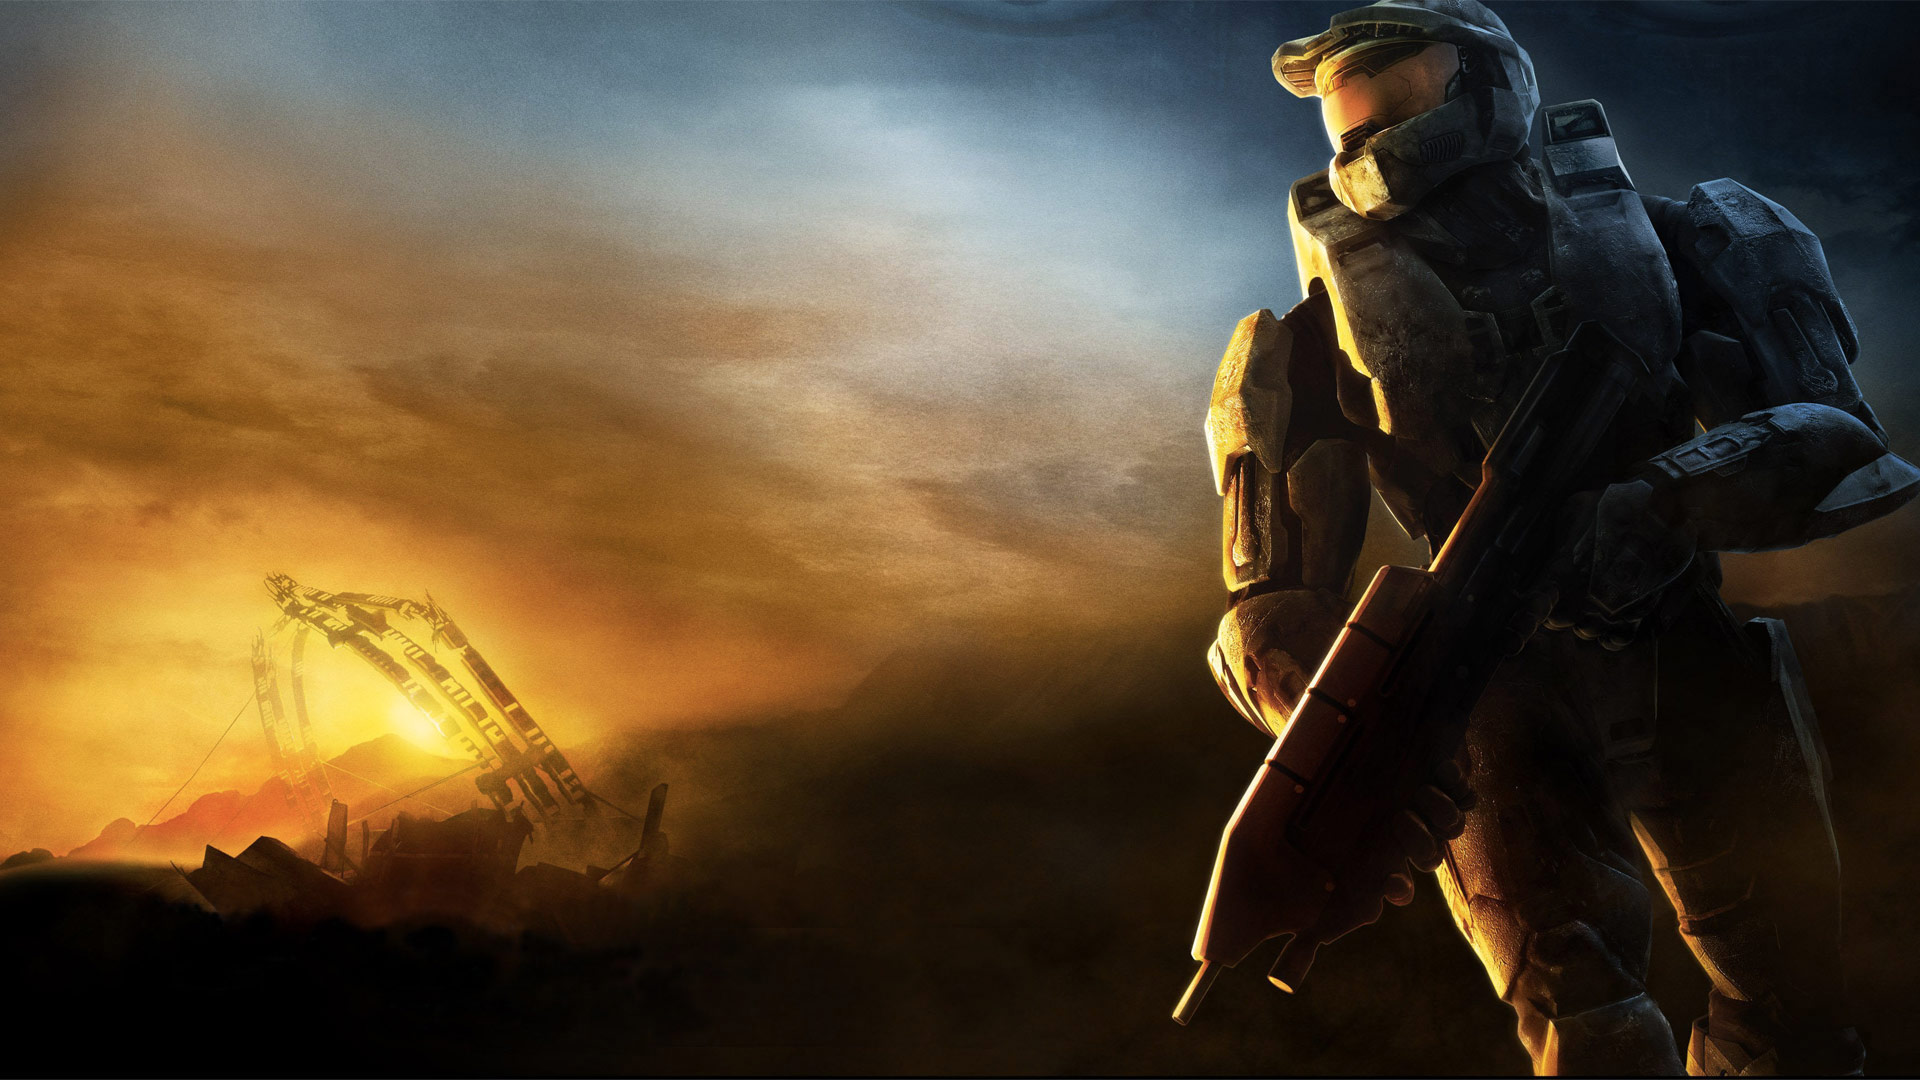 Master Chief looking out onto a sunset